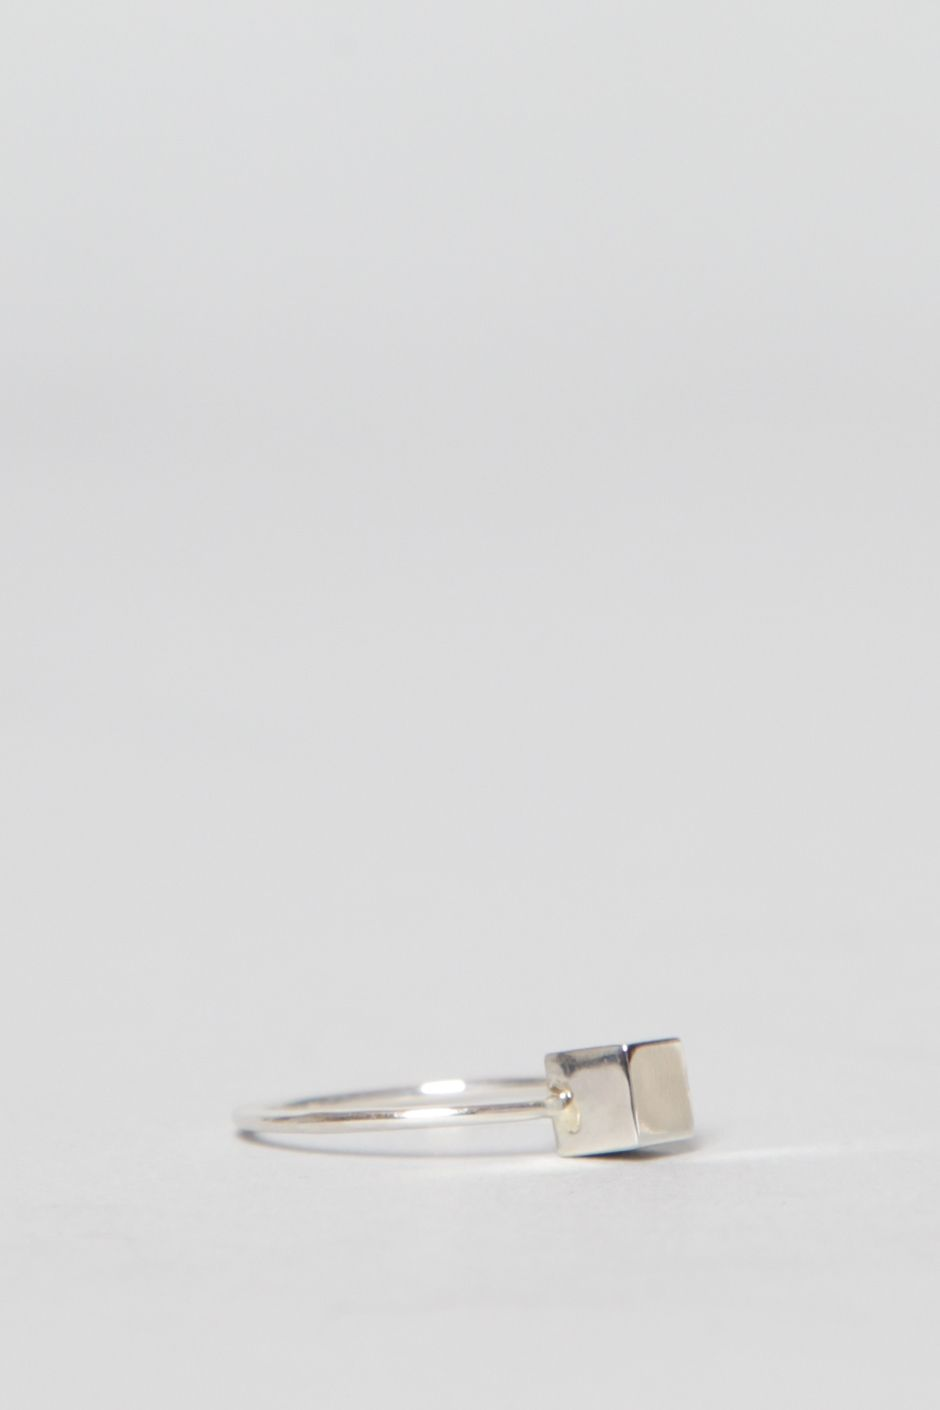 Mociun Cube Ring (Silver) | B. | Pinterest | Ss, Ring and Fashion